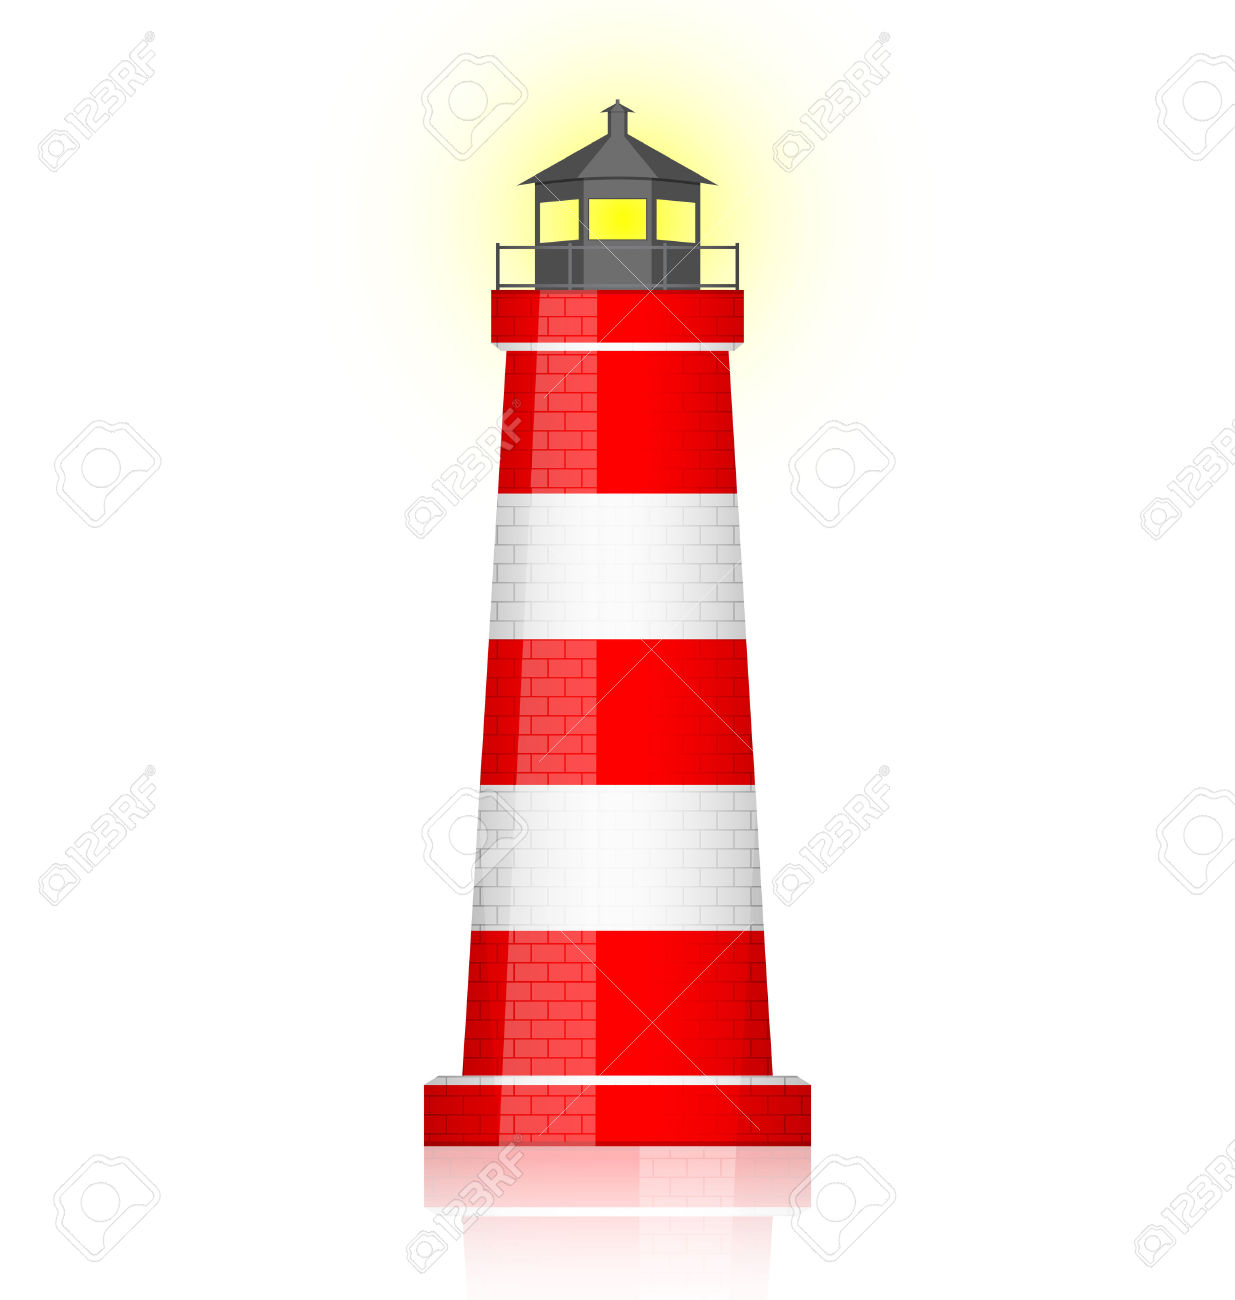 Clip Art. Lighthouse Clipart. Stonetire Free Clip Art Images.